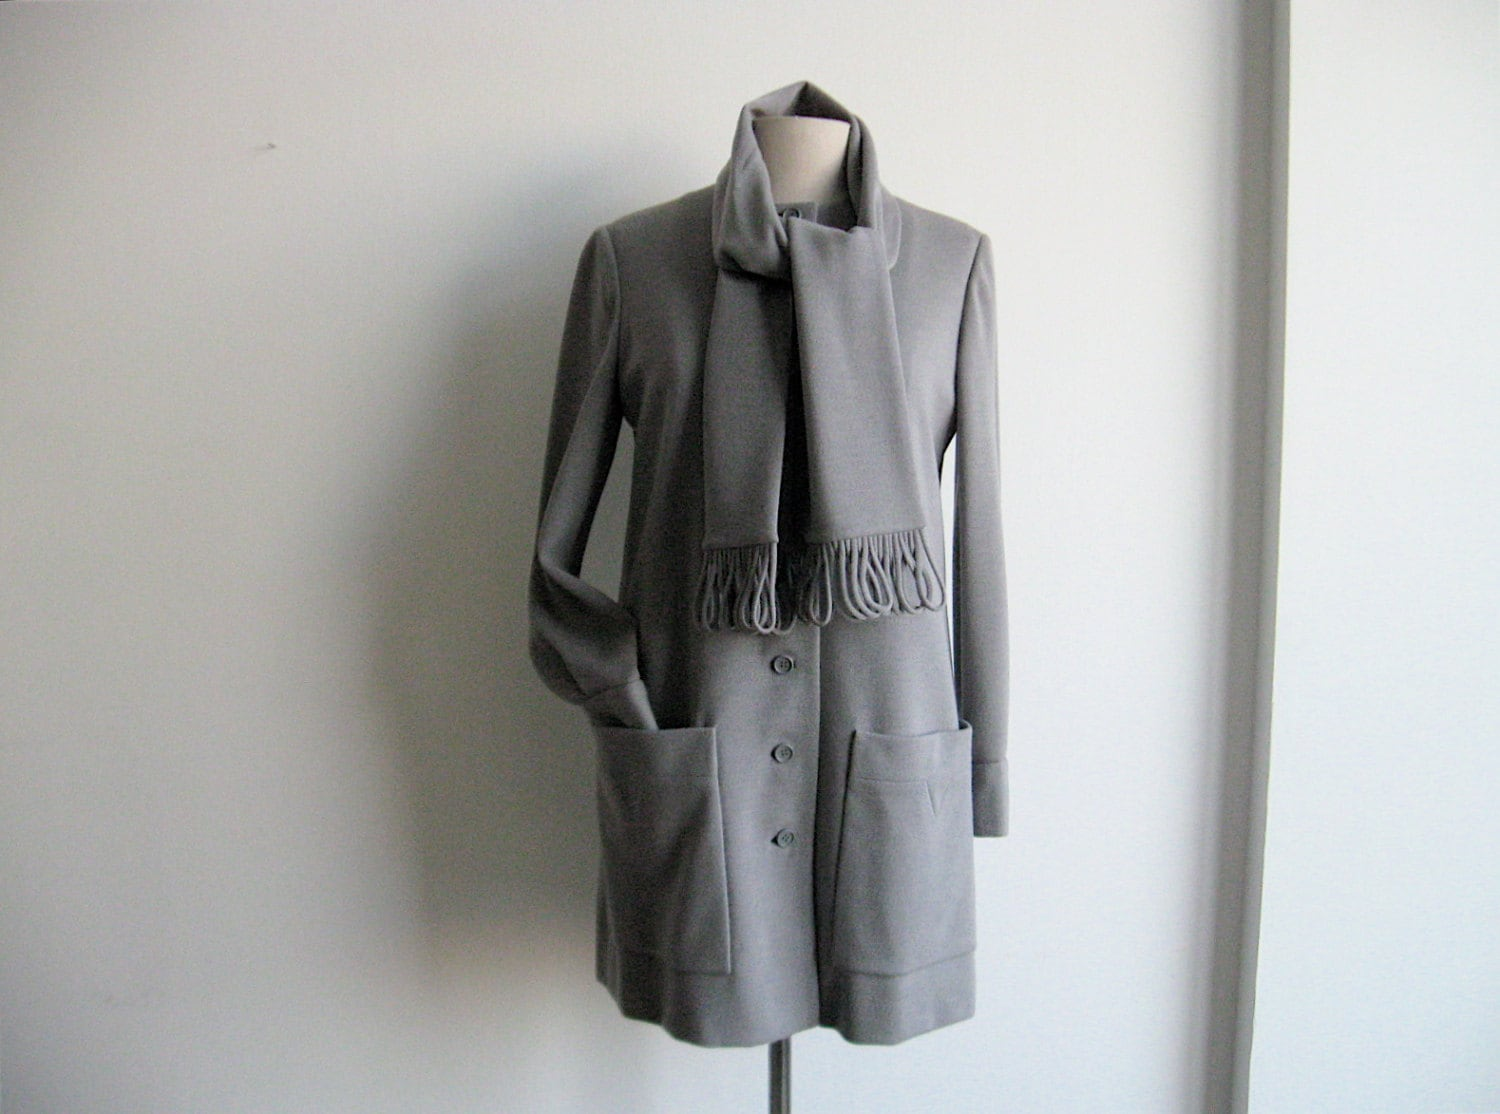 1970s Geoffrey Beene Gray Wool Jacket with Attached Scarf. - SouvenirSouvenir